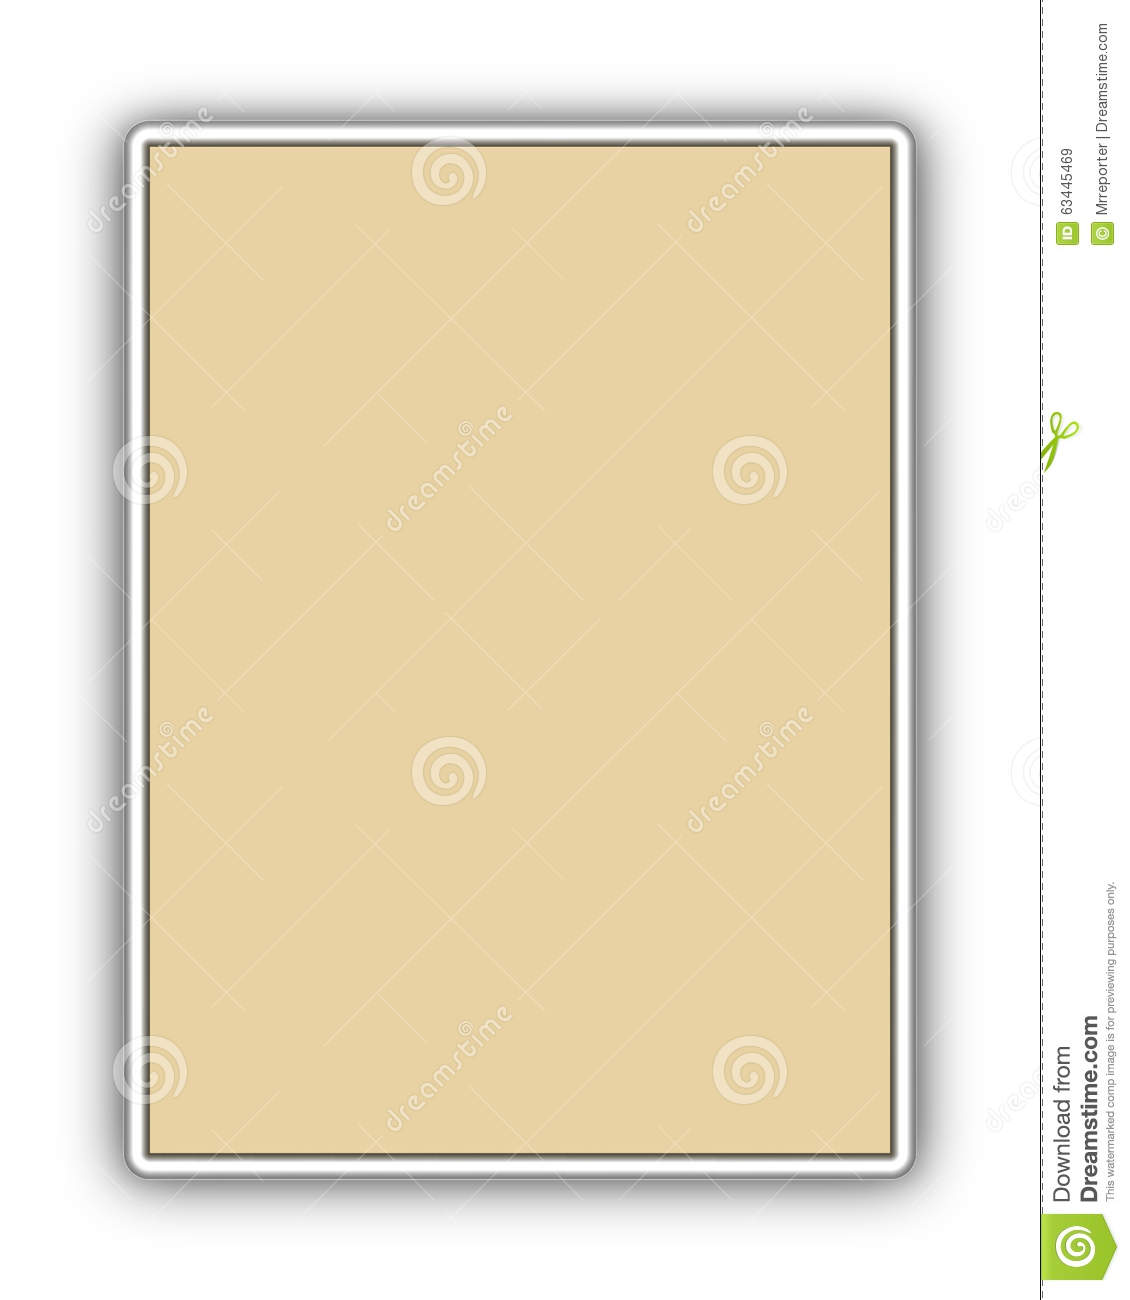 Placard Metal Billboard Stock Illustration Image 63445469